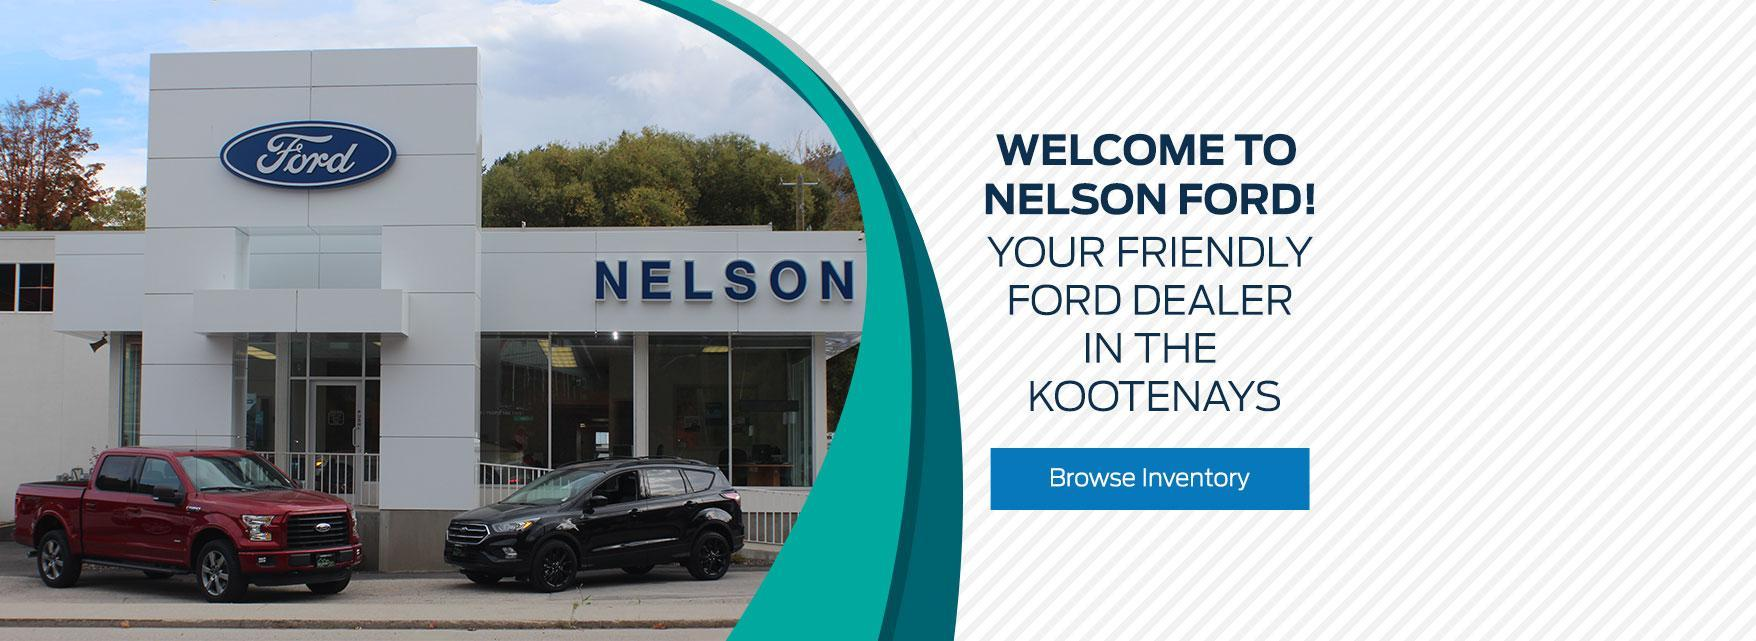 Welcome to Nelson Ford!